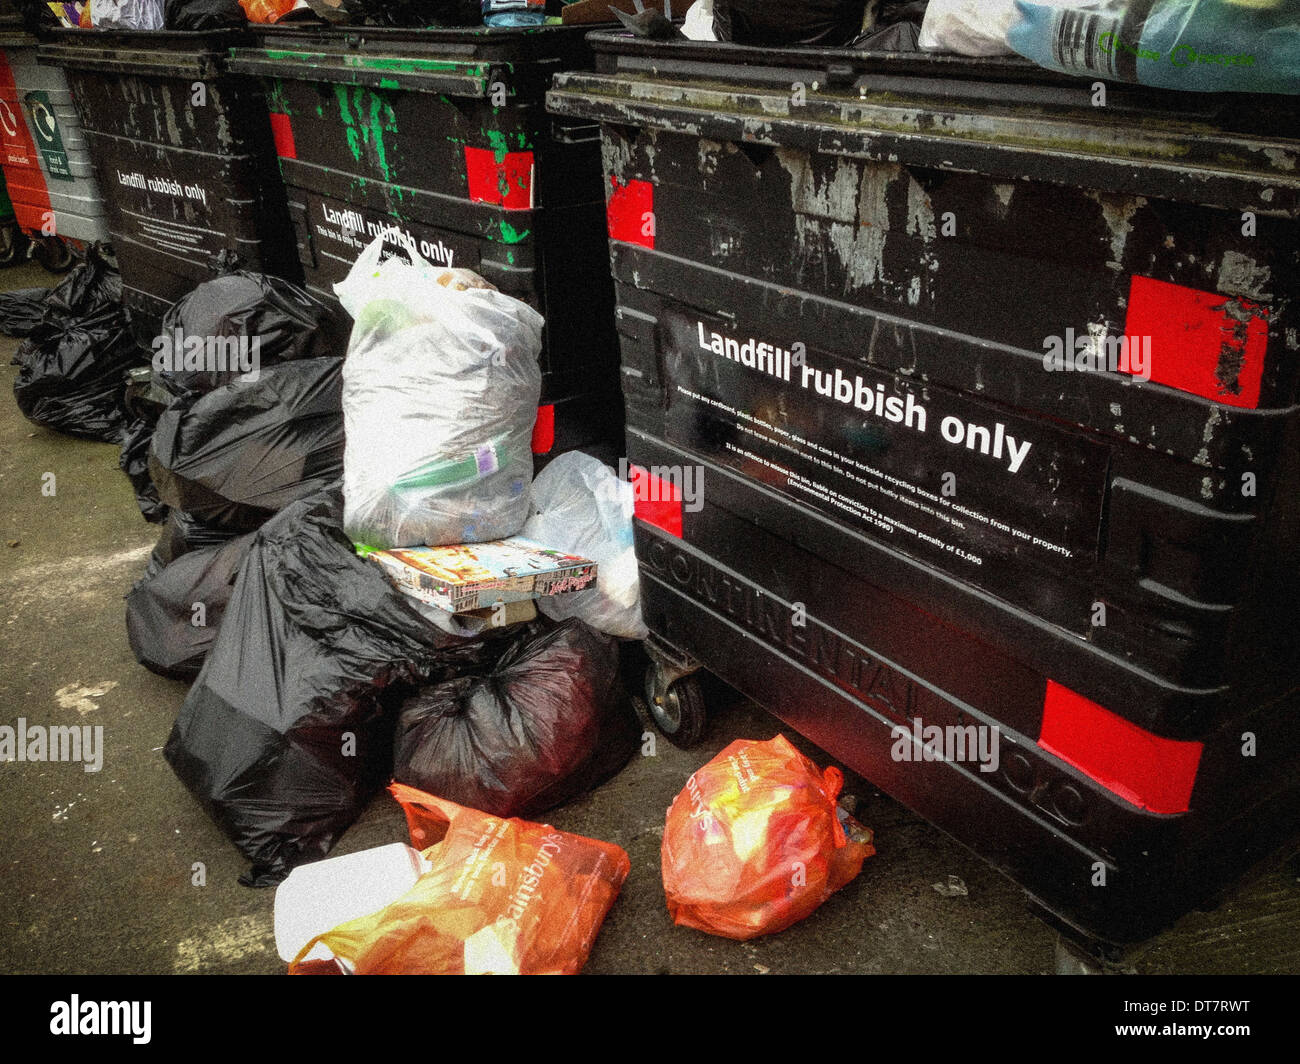 Large wheeled bins for Landfill with overflowing plastic bags - Stock Image